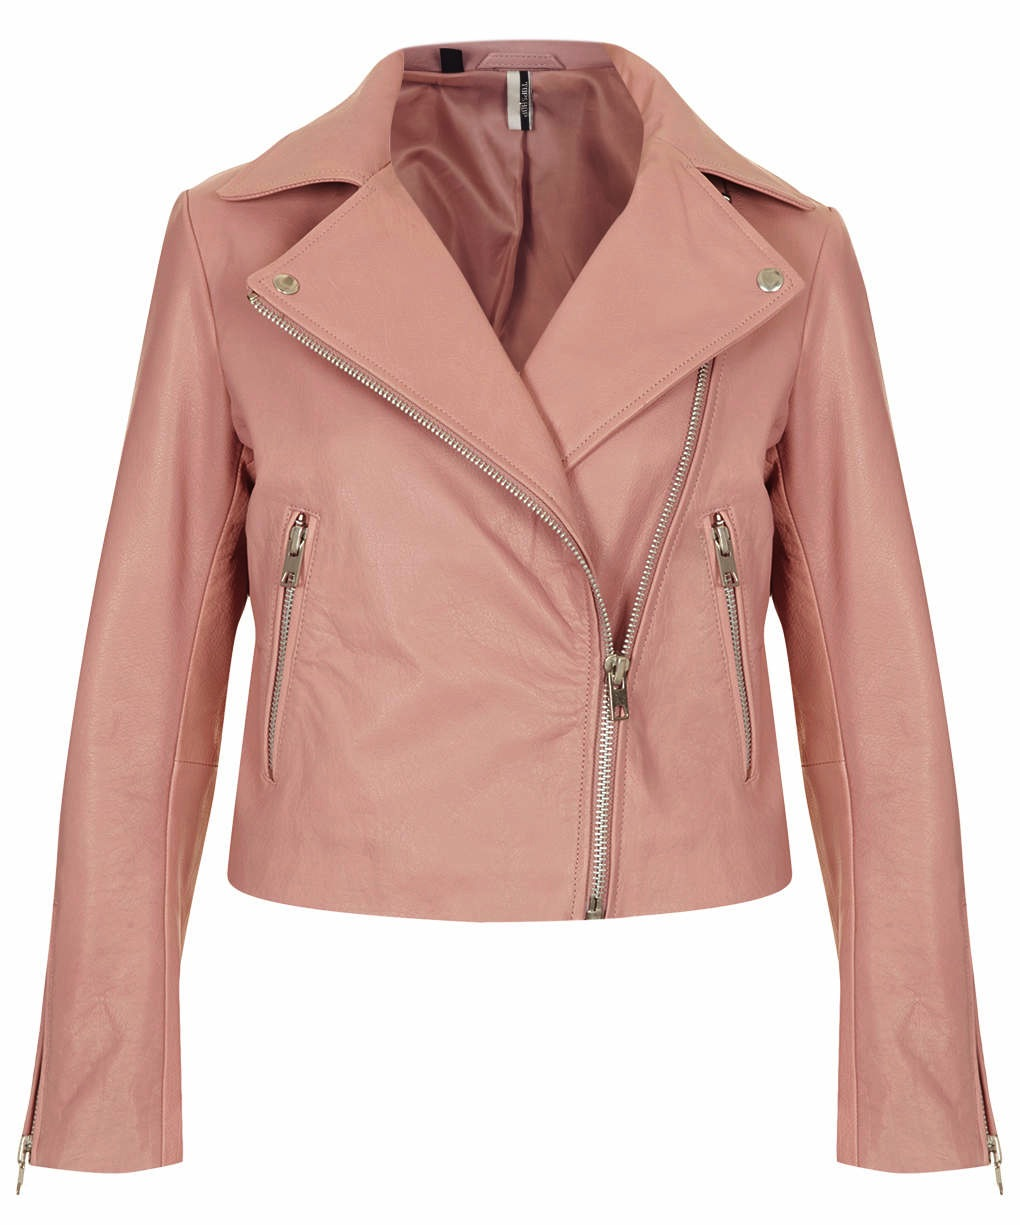 topshop-boxy-leather-jacket-biker-pink